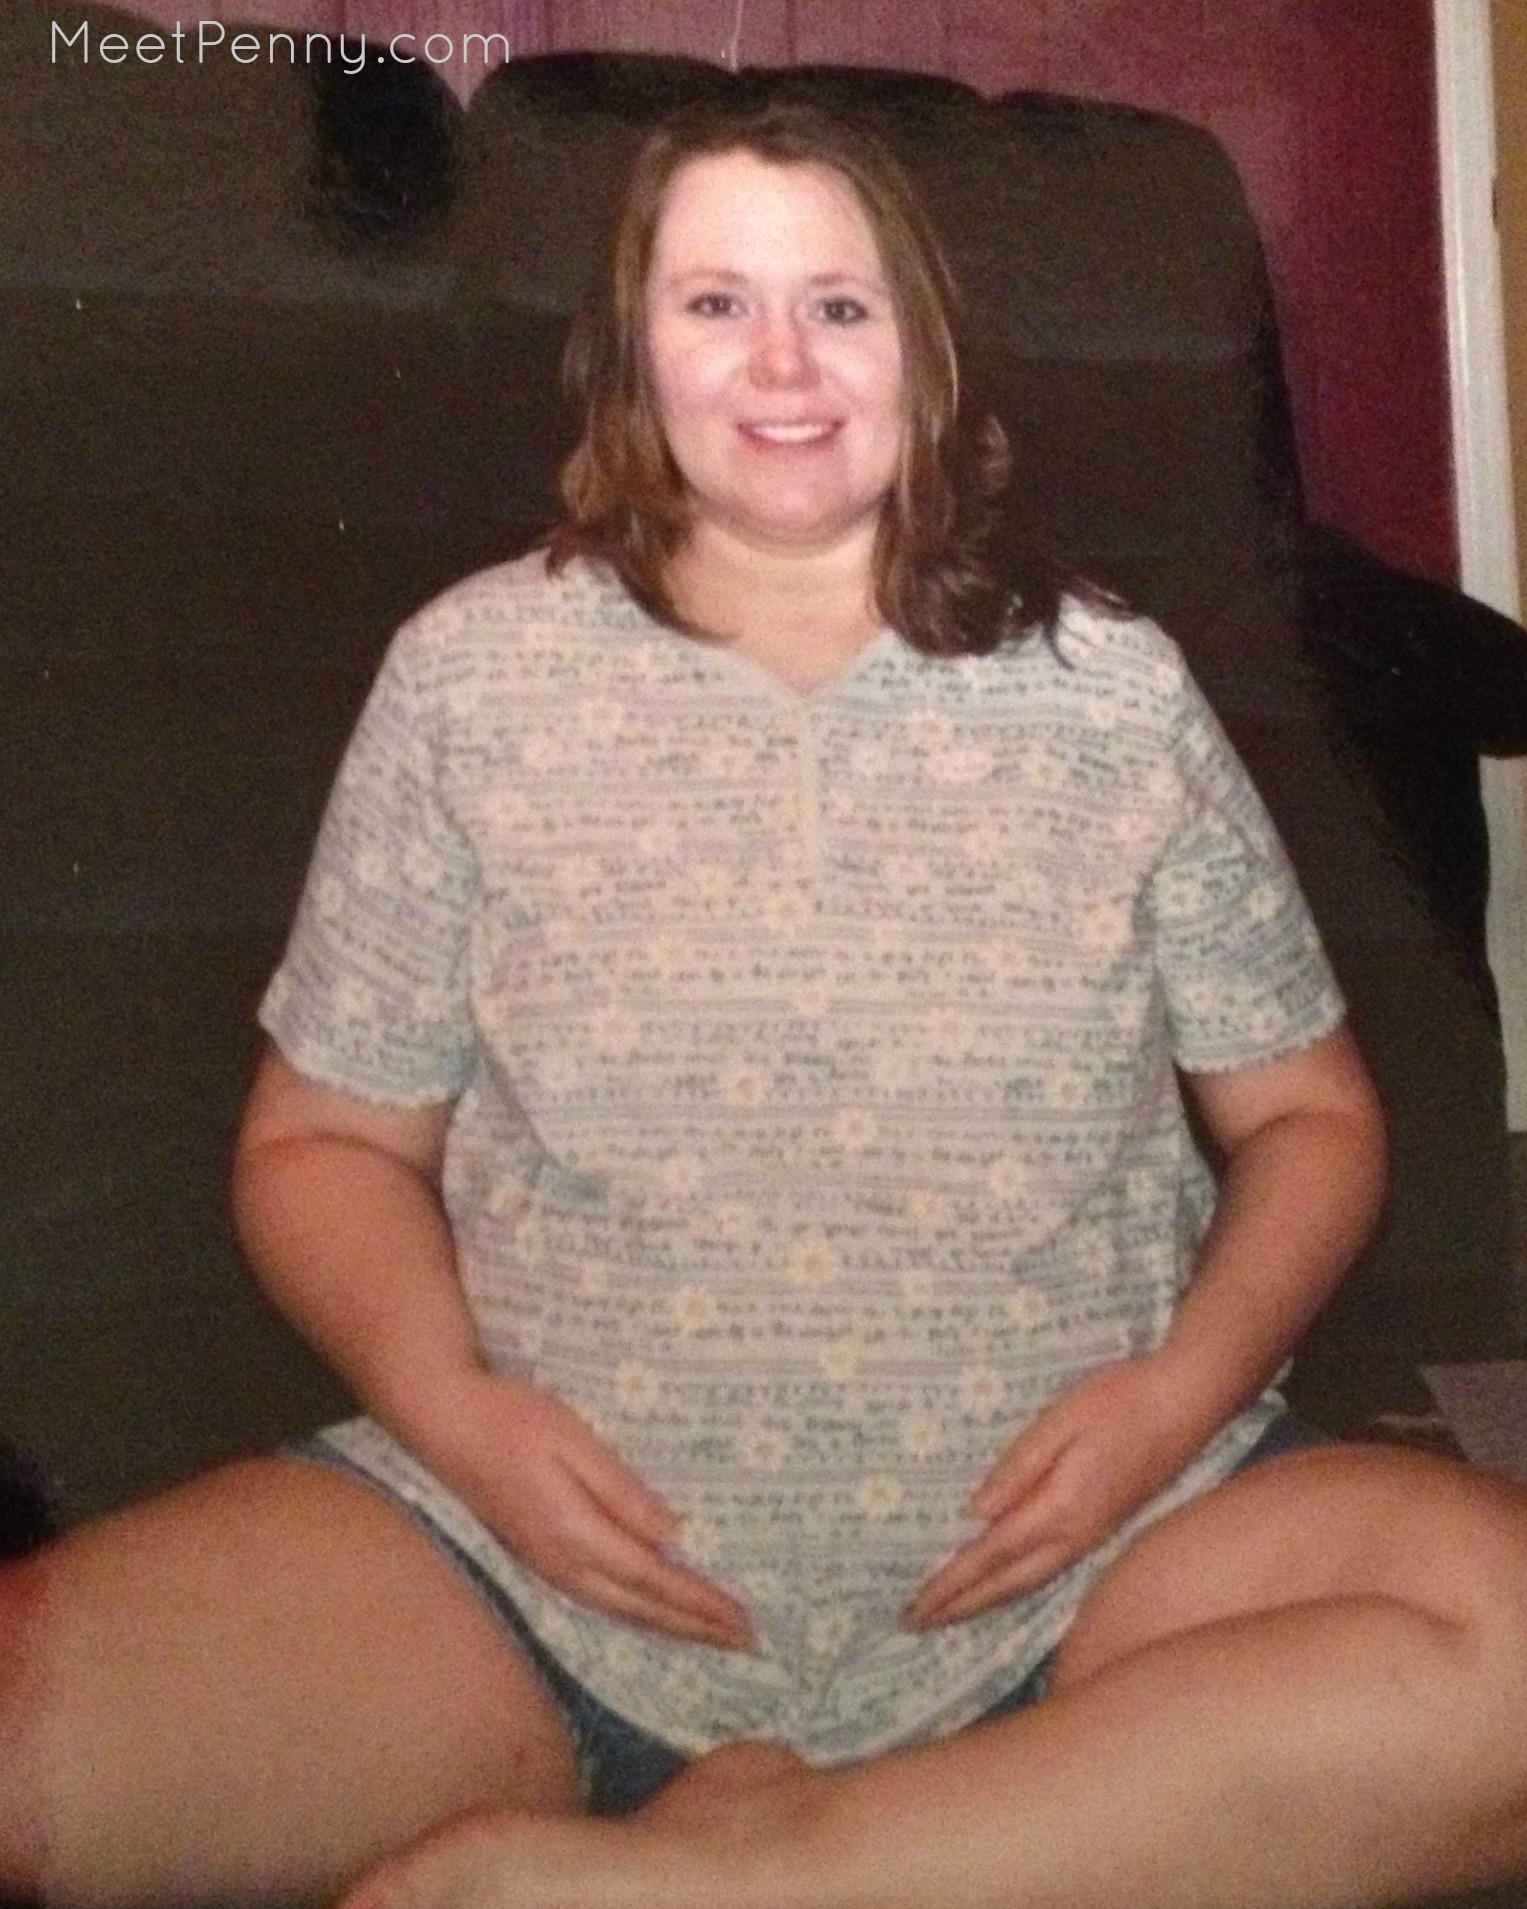 My Fat Story is a five post series that details her struggle with food and weight.  I can see myself in this.